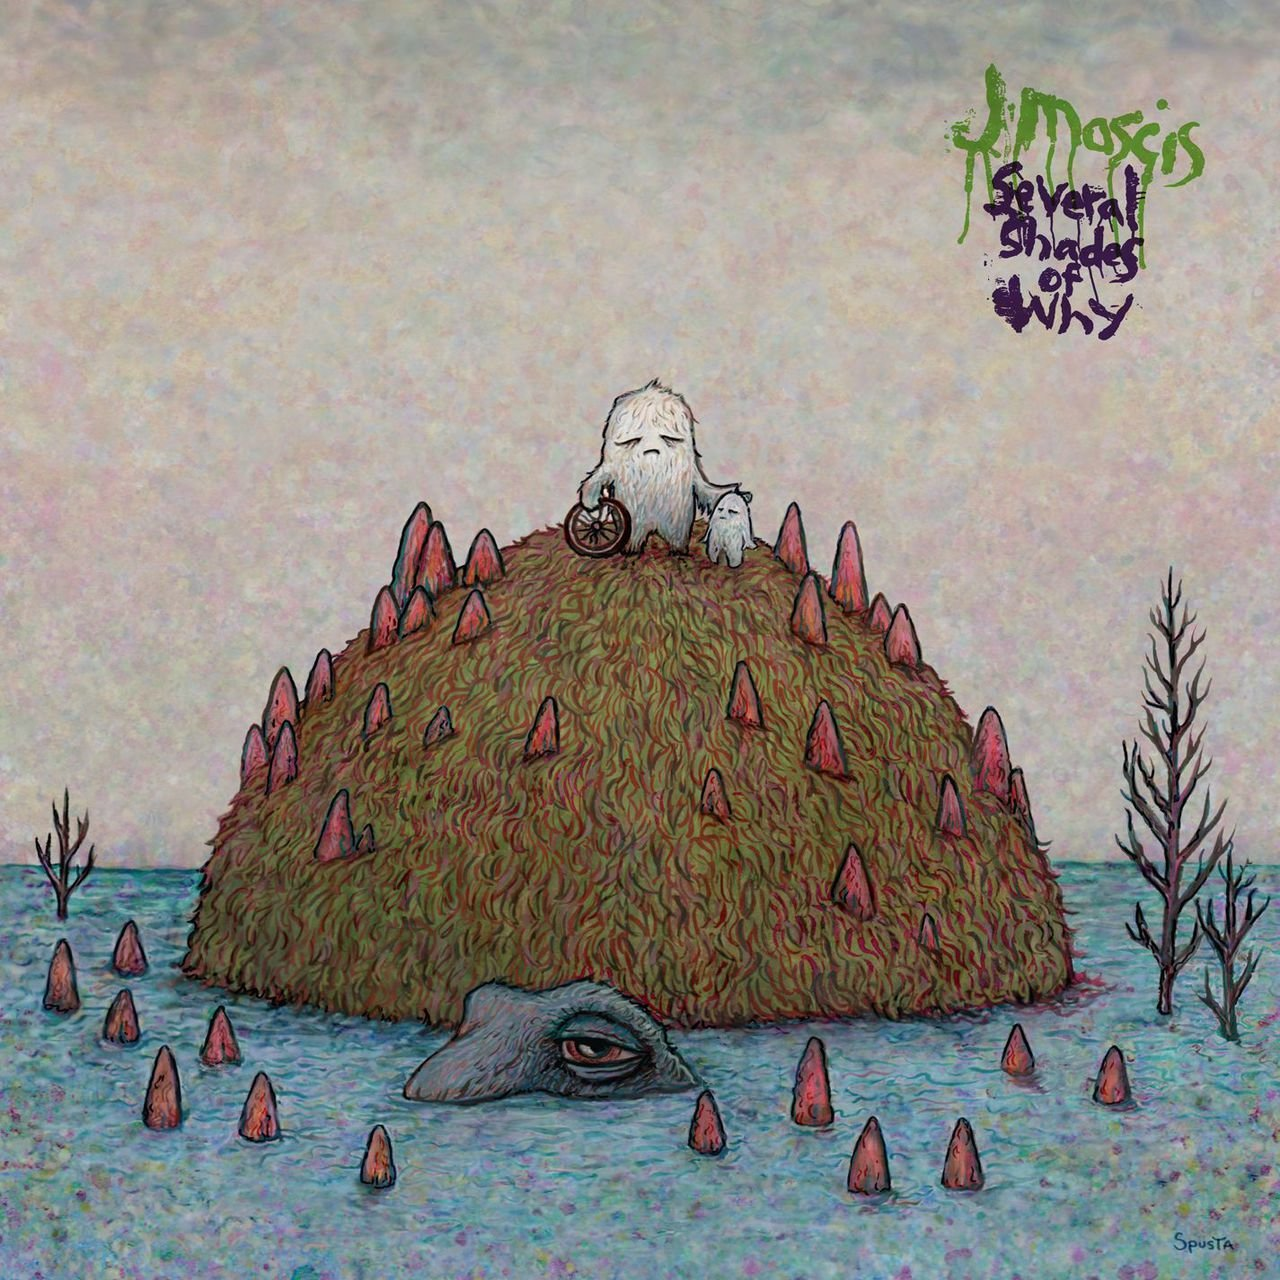 J Mascis - Several Shades Of Why [LP]